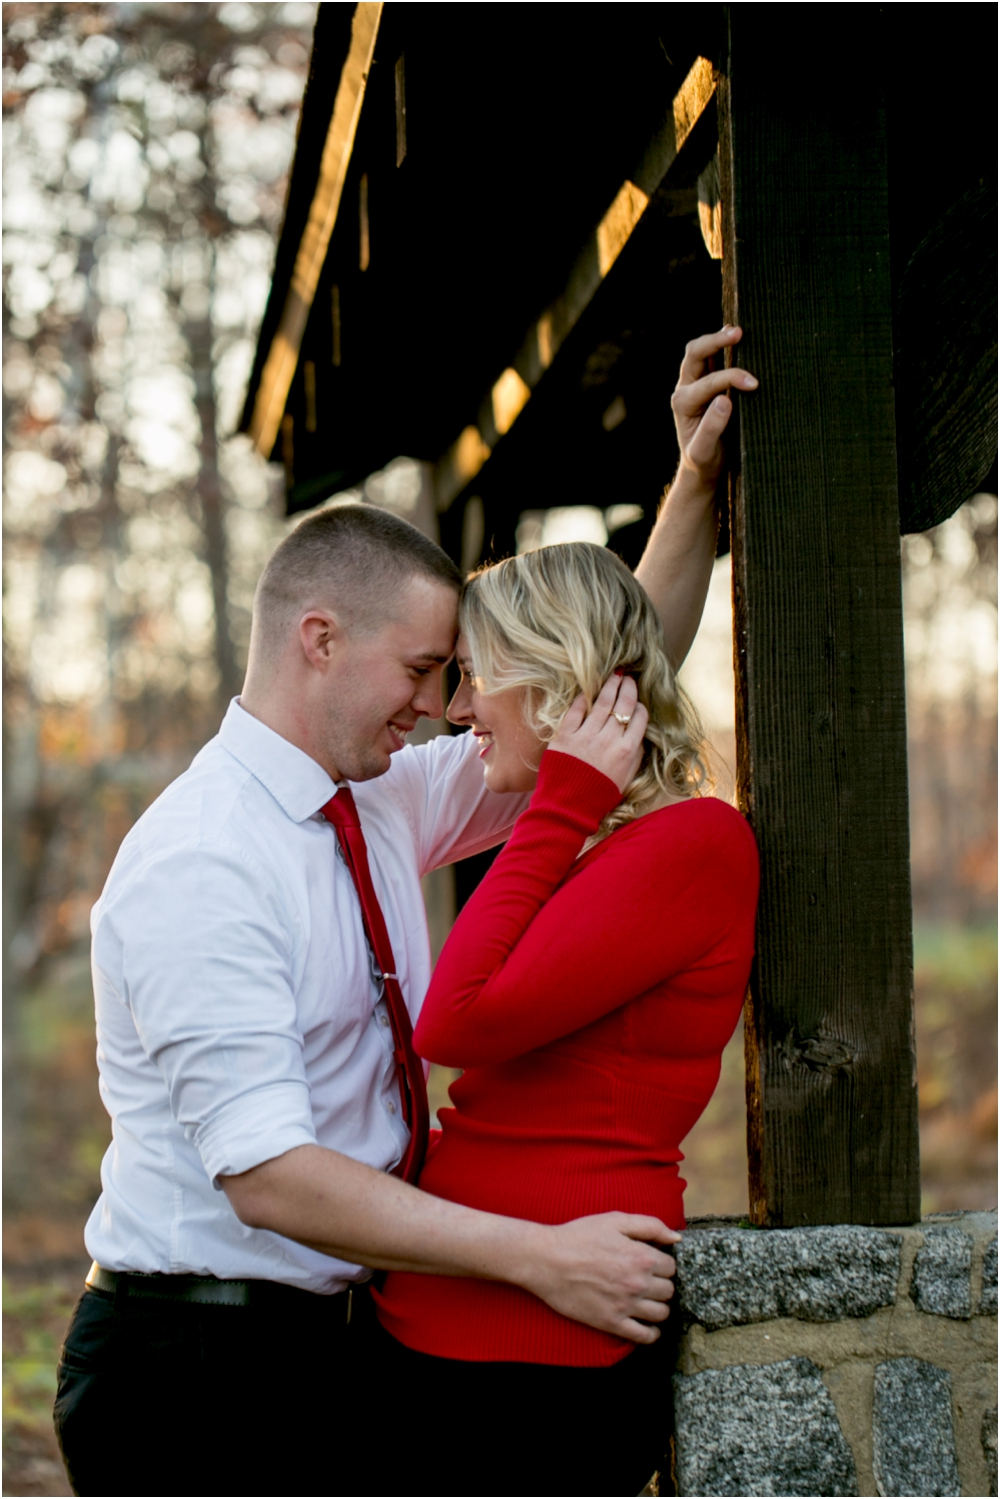 kaitlin+scott+holiday+session+patapsco+state+park+living+radiant+photography+photos_0011.jpg